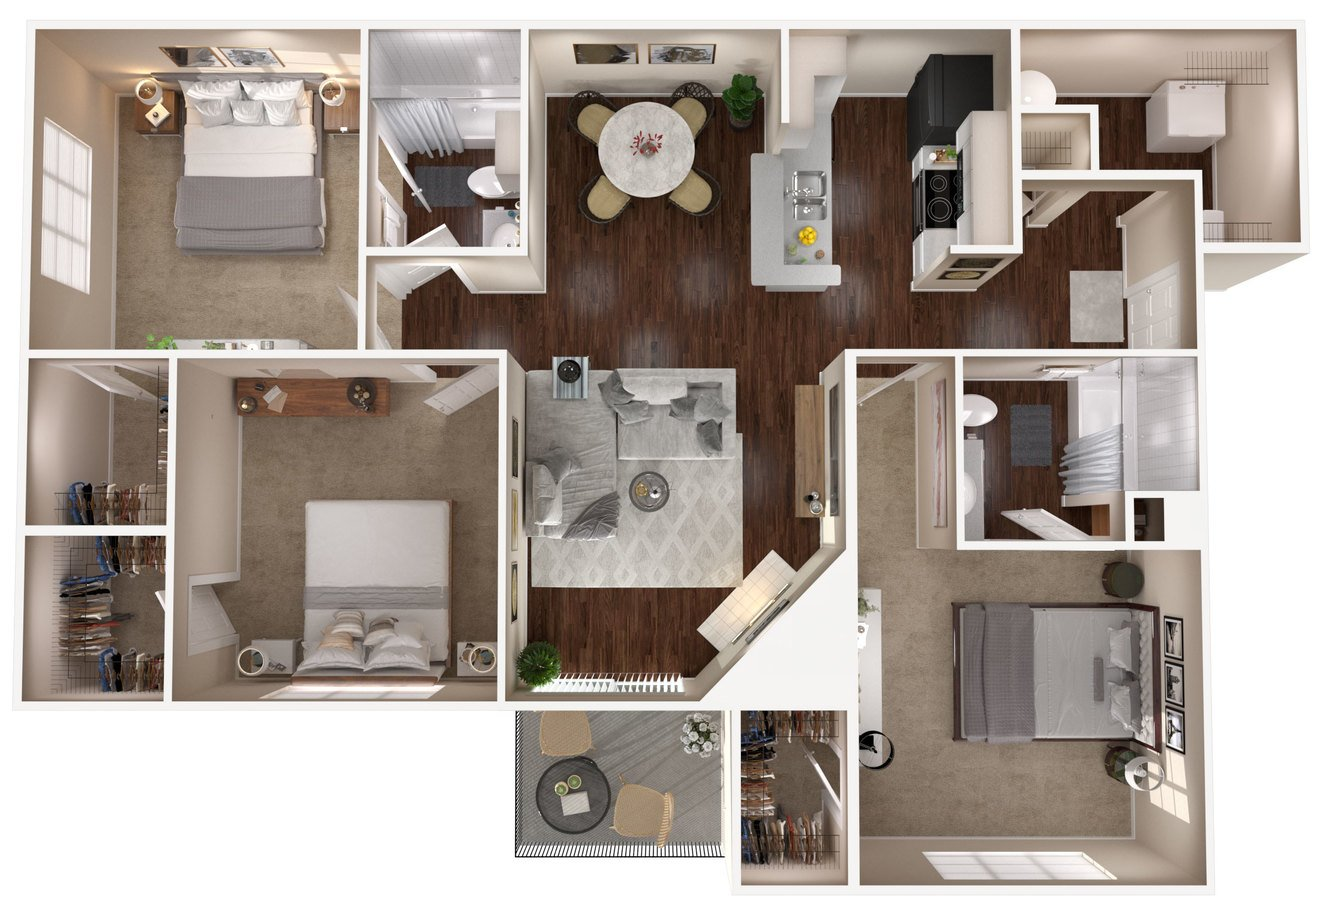 3 Bedrooms 2 Bathrooms Apartment for rent at The Lakes Apartments in Indianapolis, IN